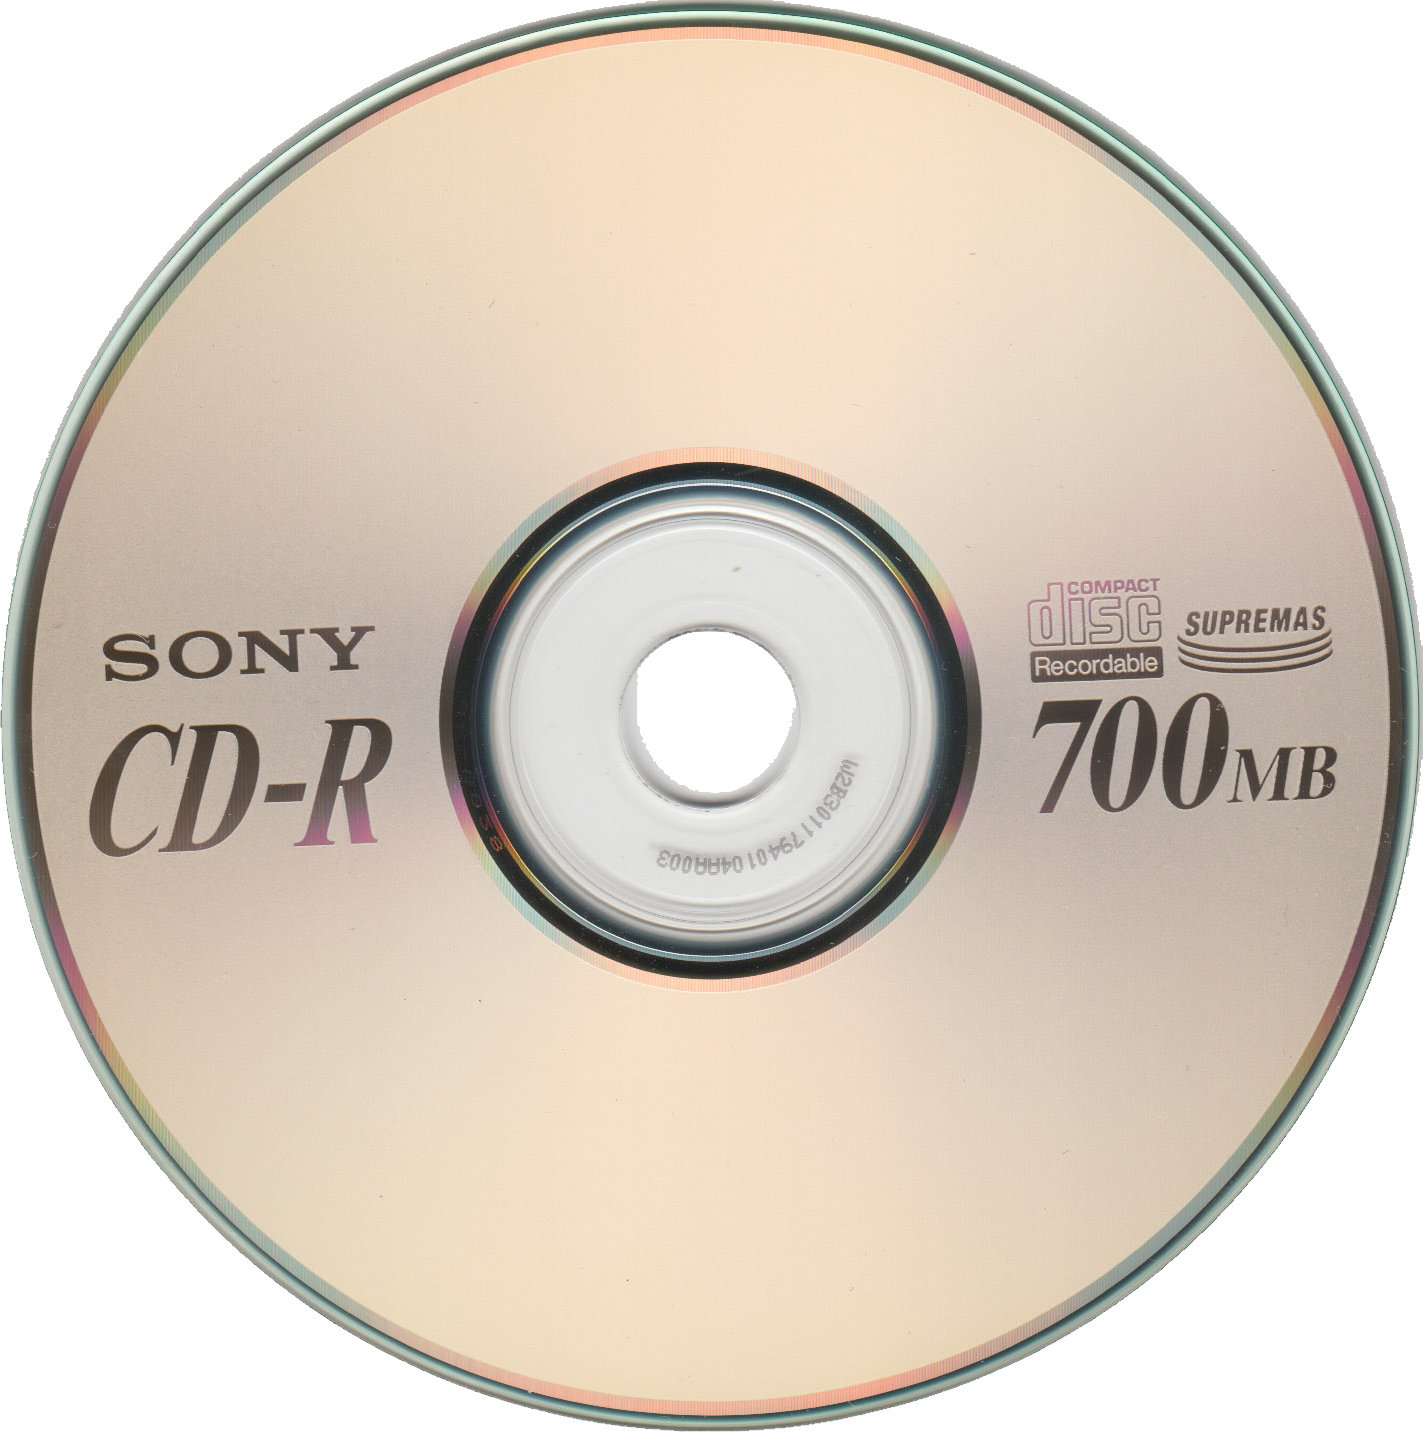 compact disk, cd, dvd png image logo #6279